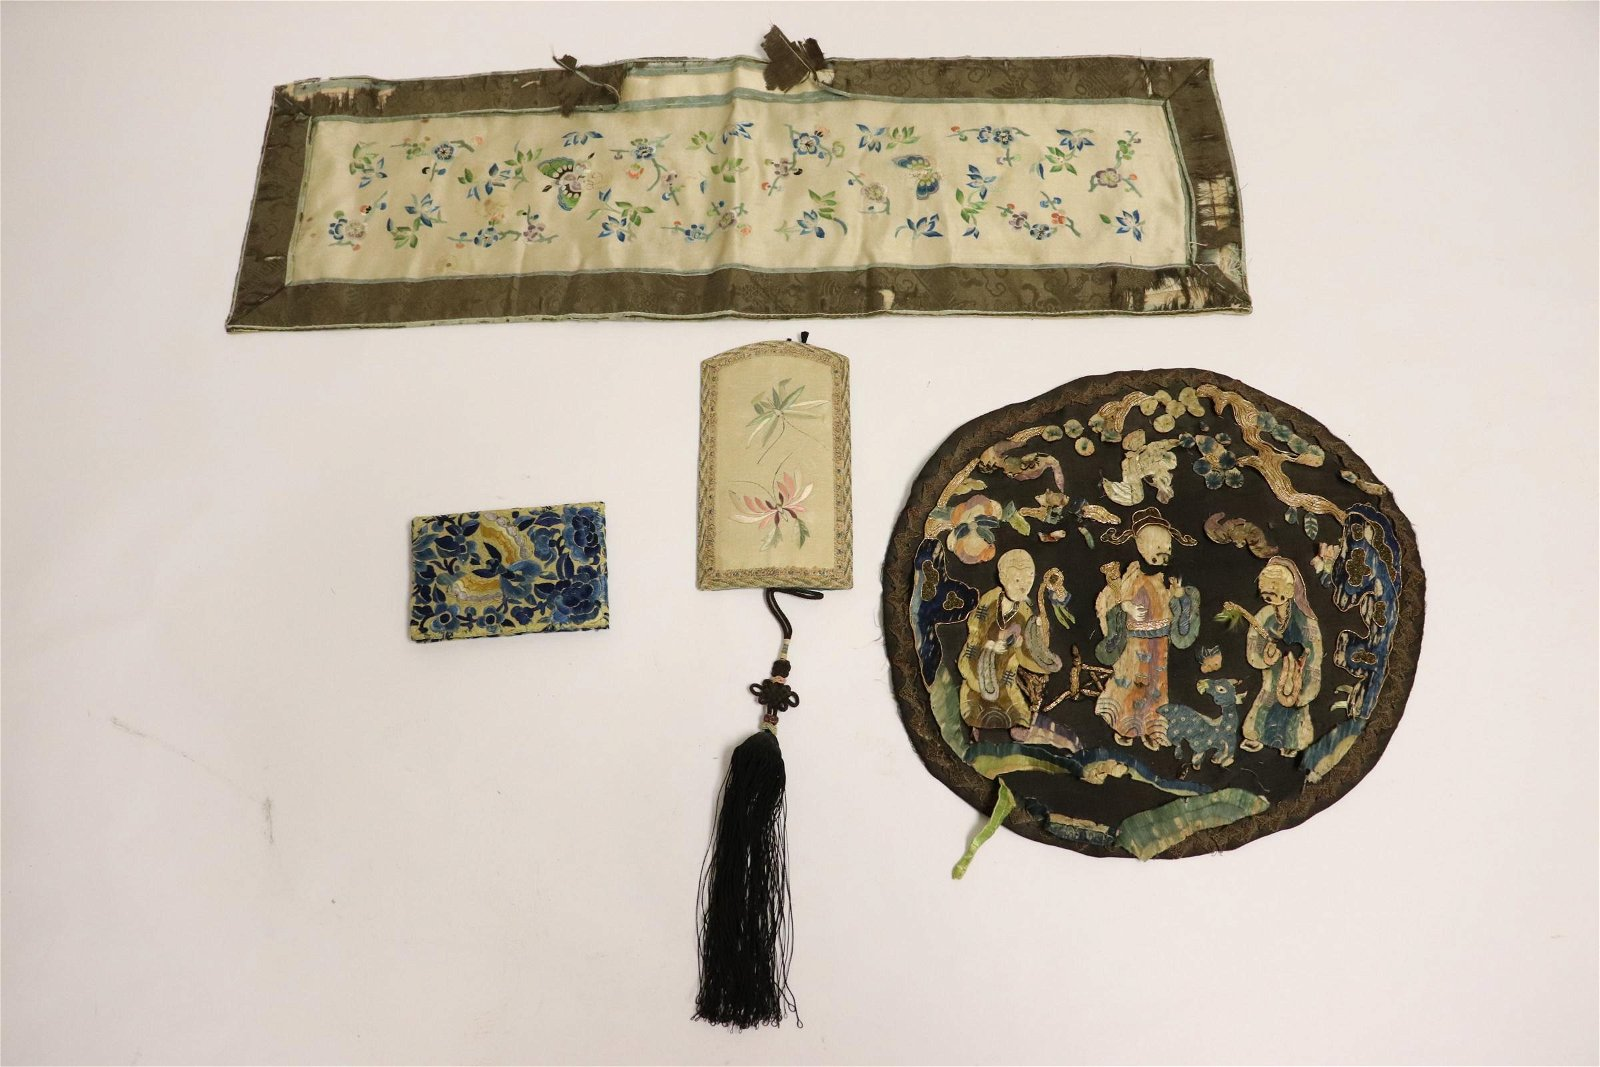 4 Chinese antique embroidery pieces